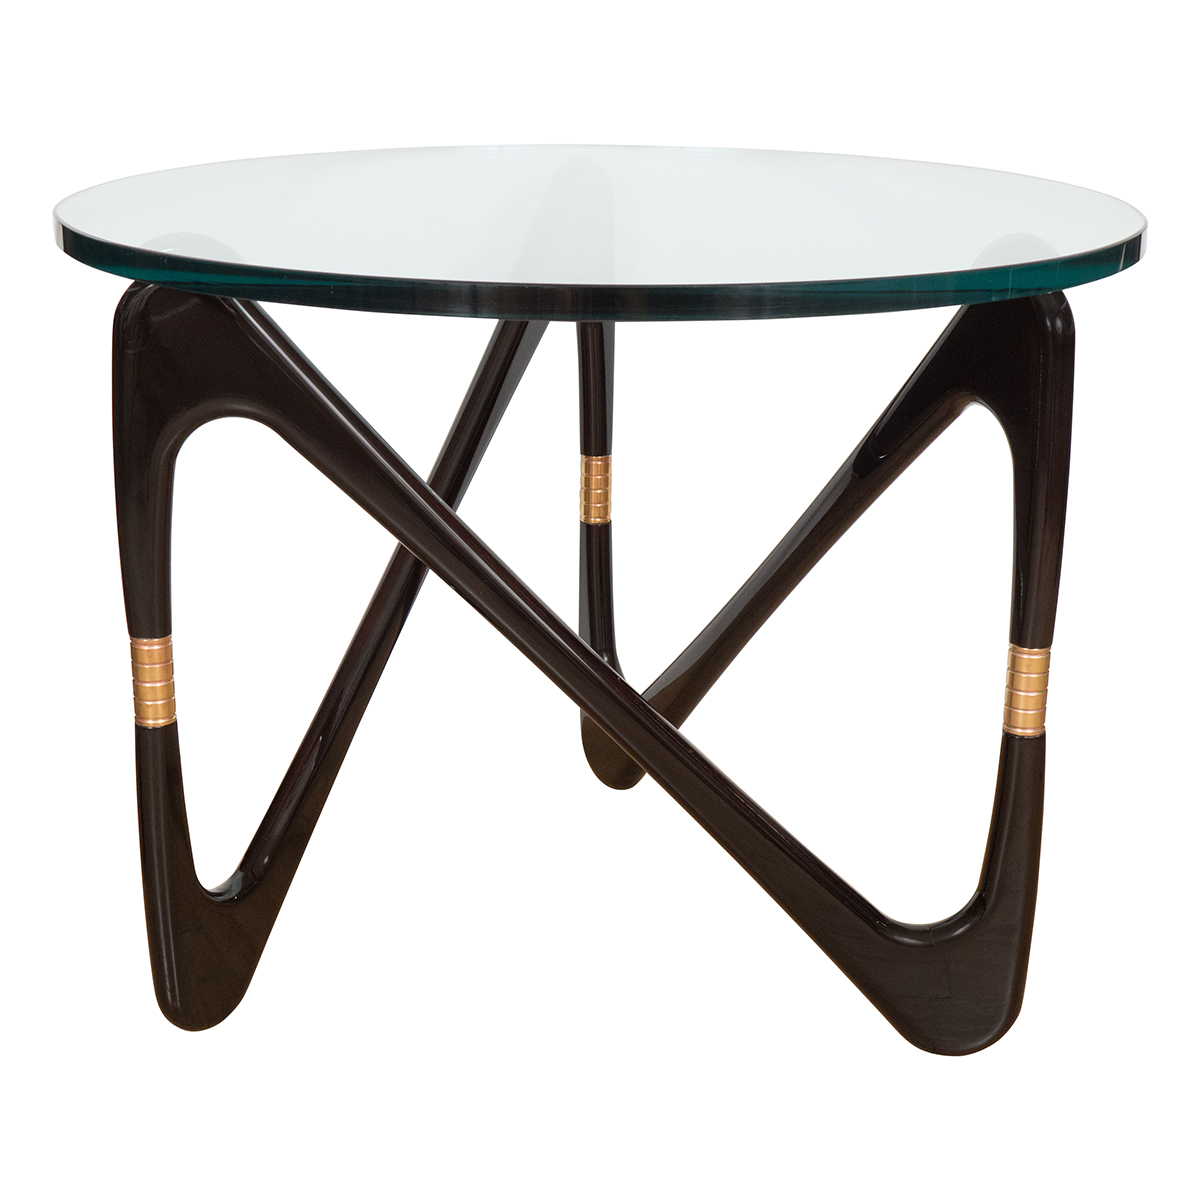 Circular End Tables Pair Of Circular Side Tables With Sculptural Lacquered